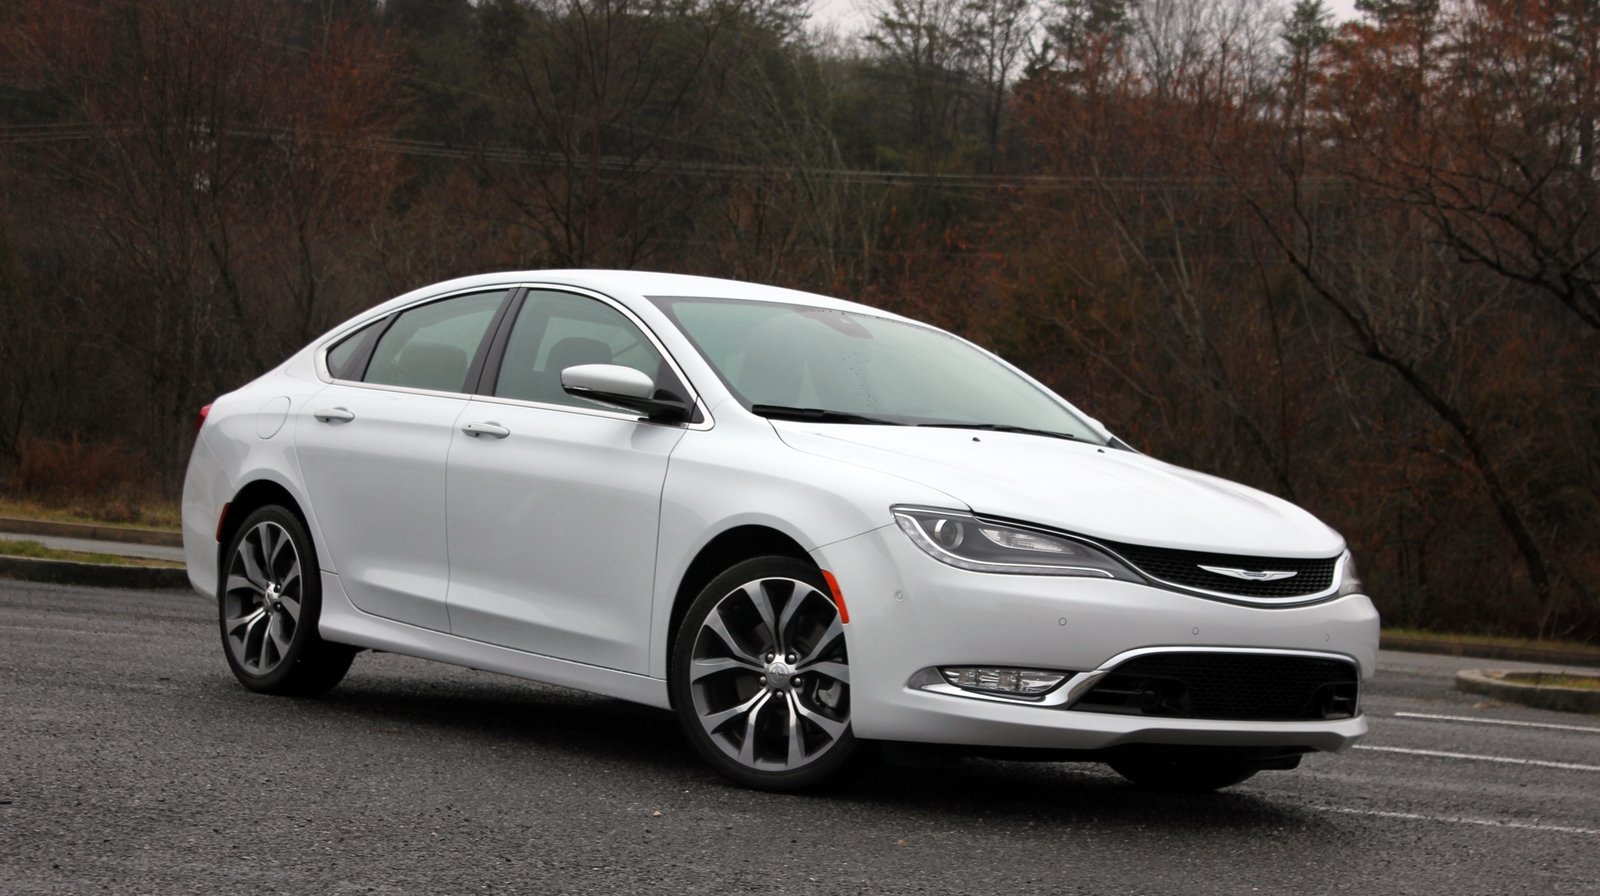 2015 chrysler 200c driven review top speed. Black Bedroom Furniture Sets. Home Design Ideas